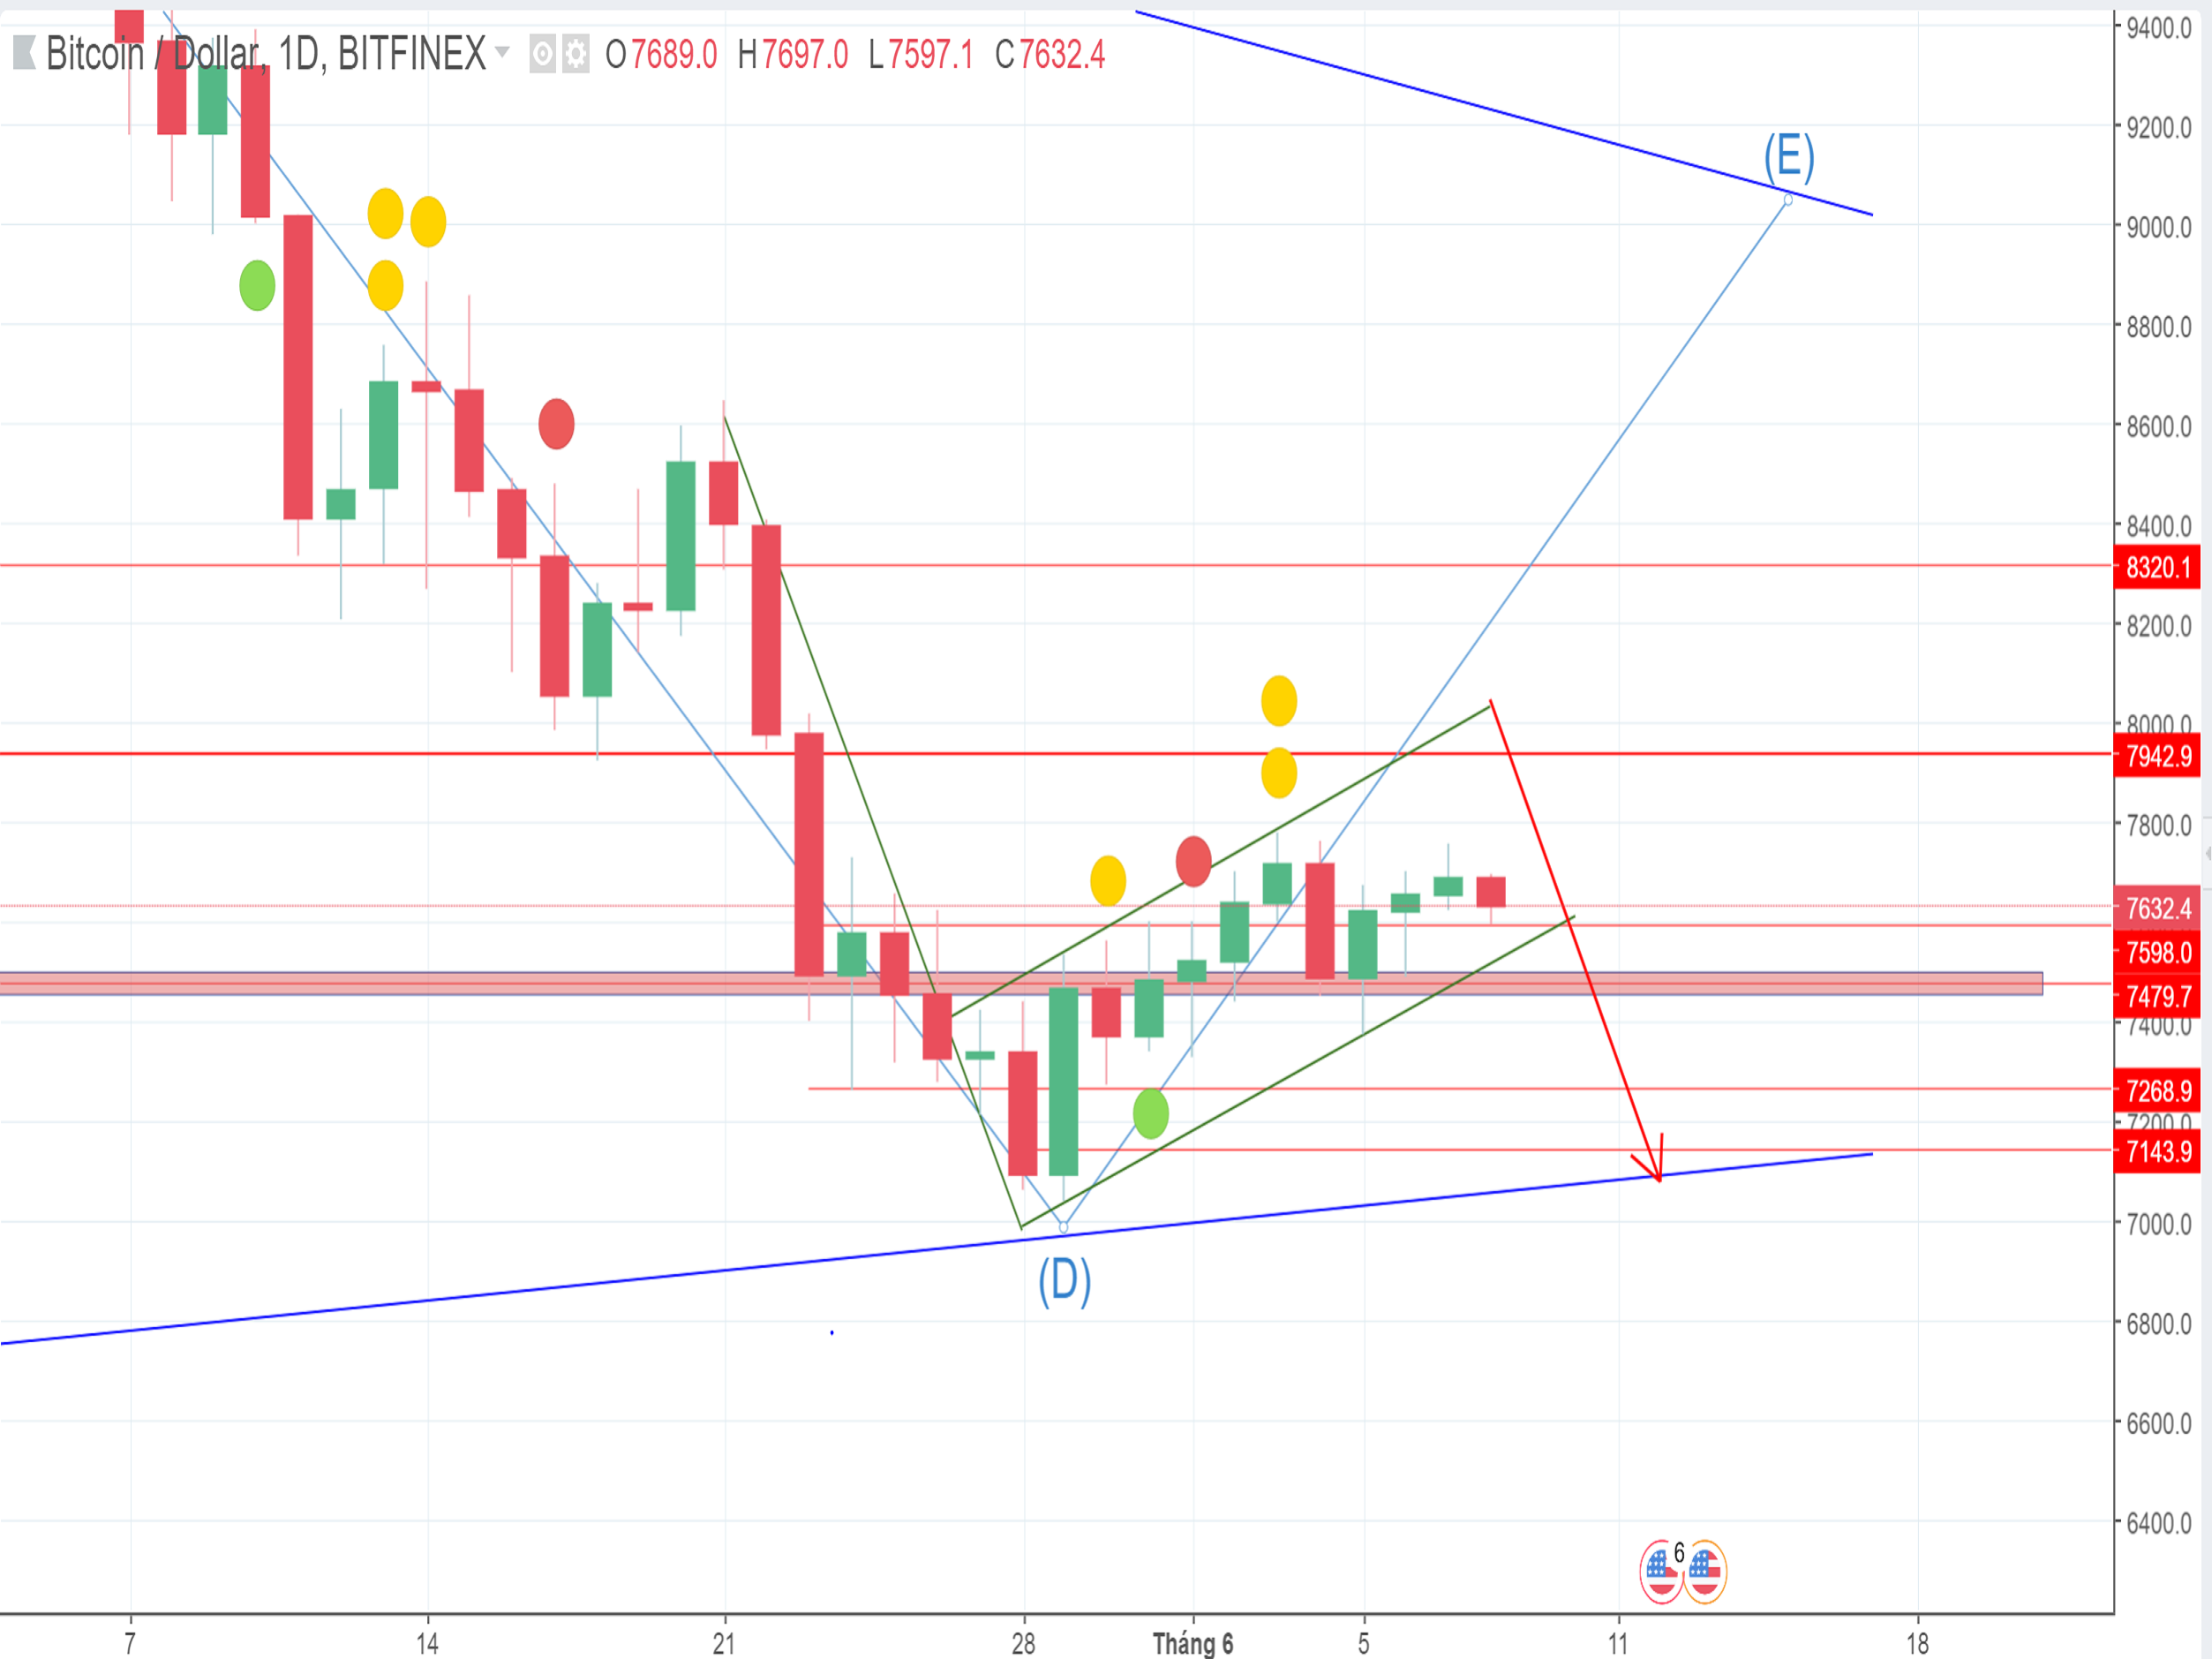 Bitcoin price: Technical Analysis on June 8th